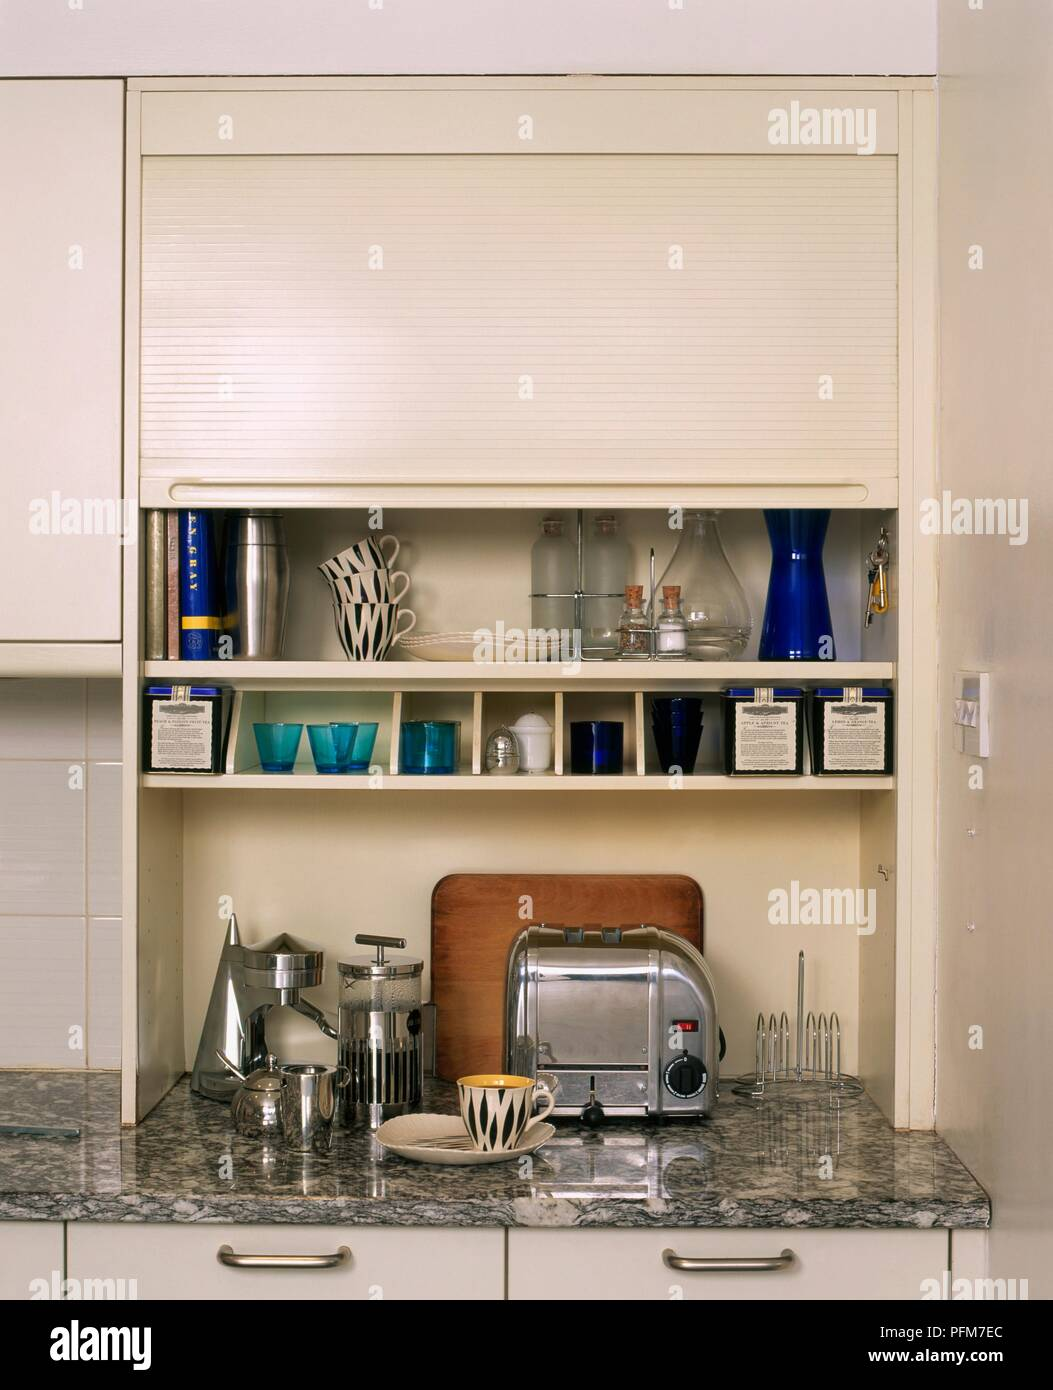 Roll Up Kitchen Cabinet Doors Kitchen cabiwith roll up door Stock Photo   Alamy